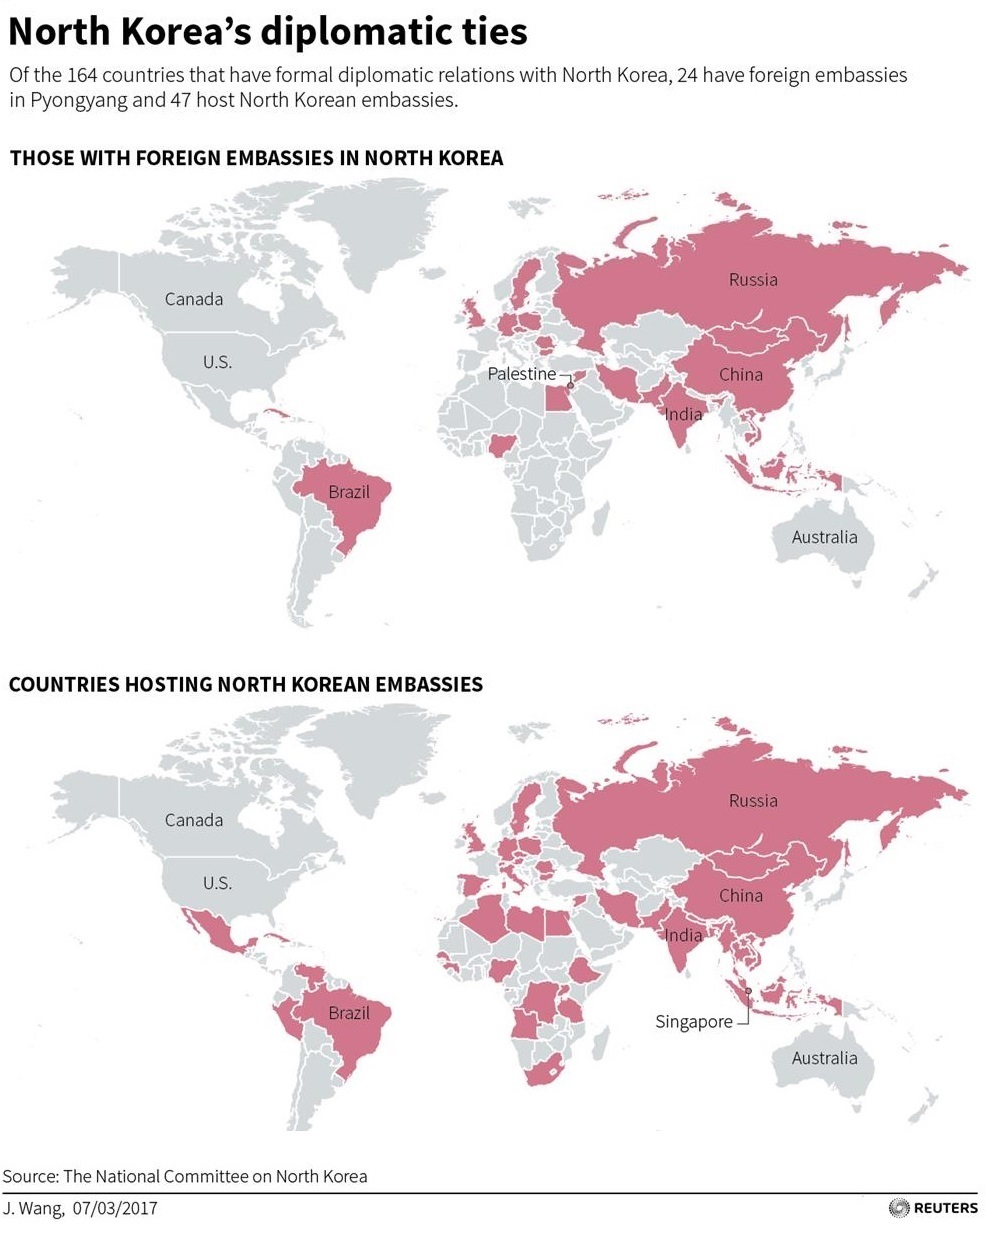 World Map Of Diplomatic Ties With North Korea Astro Awani - Foreign embassies in the us map